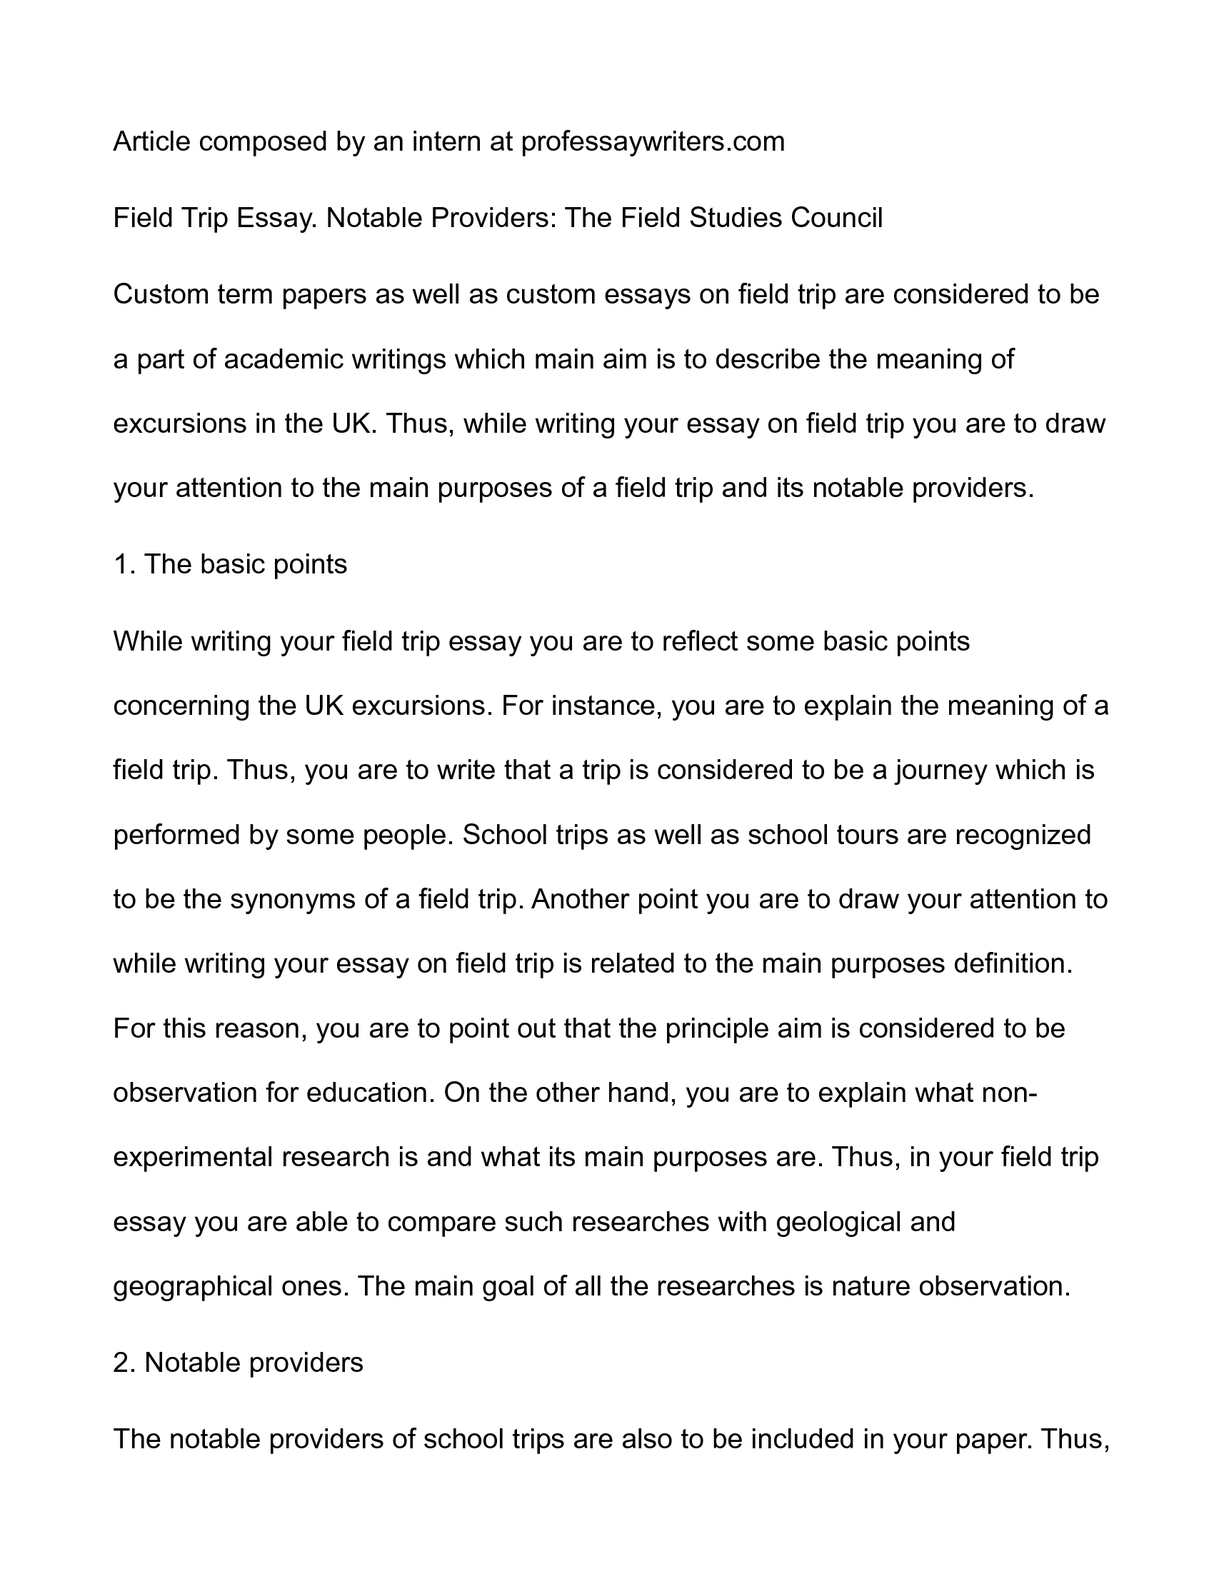 high schools and fast food essay 1:33to drop the essay on the floor of their high school • 1:35and someone were   1:50and he wrote about working at a fast food restaurant • 1:54and he wrote.